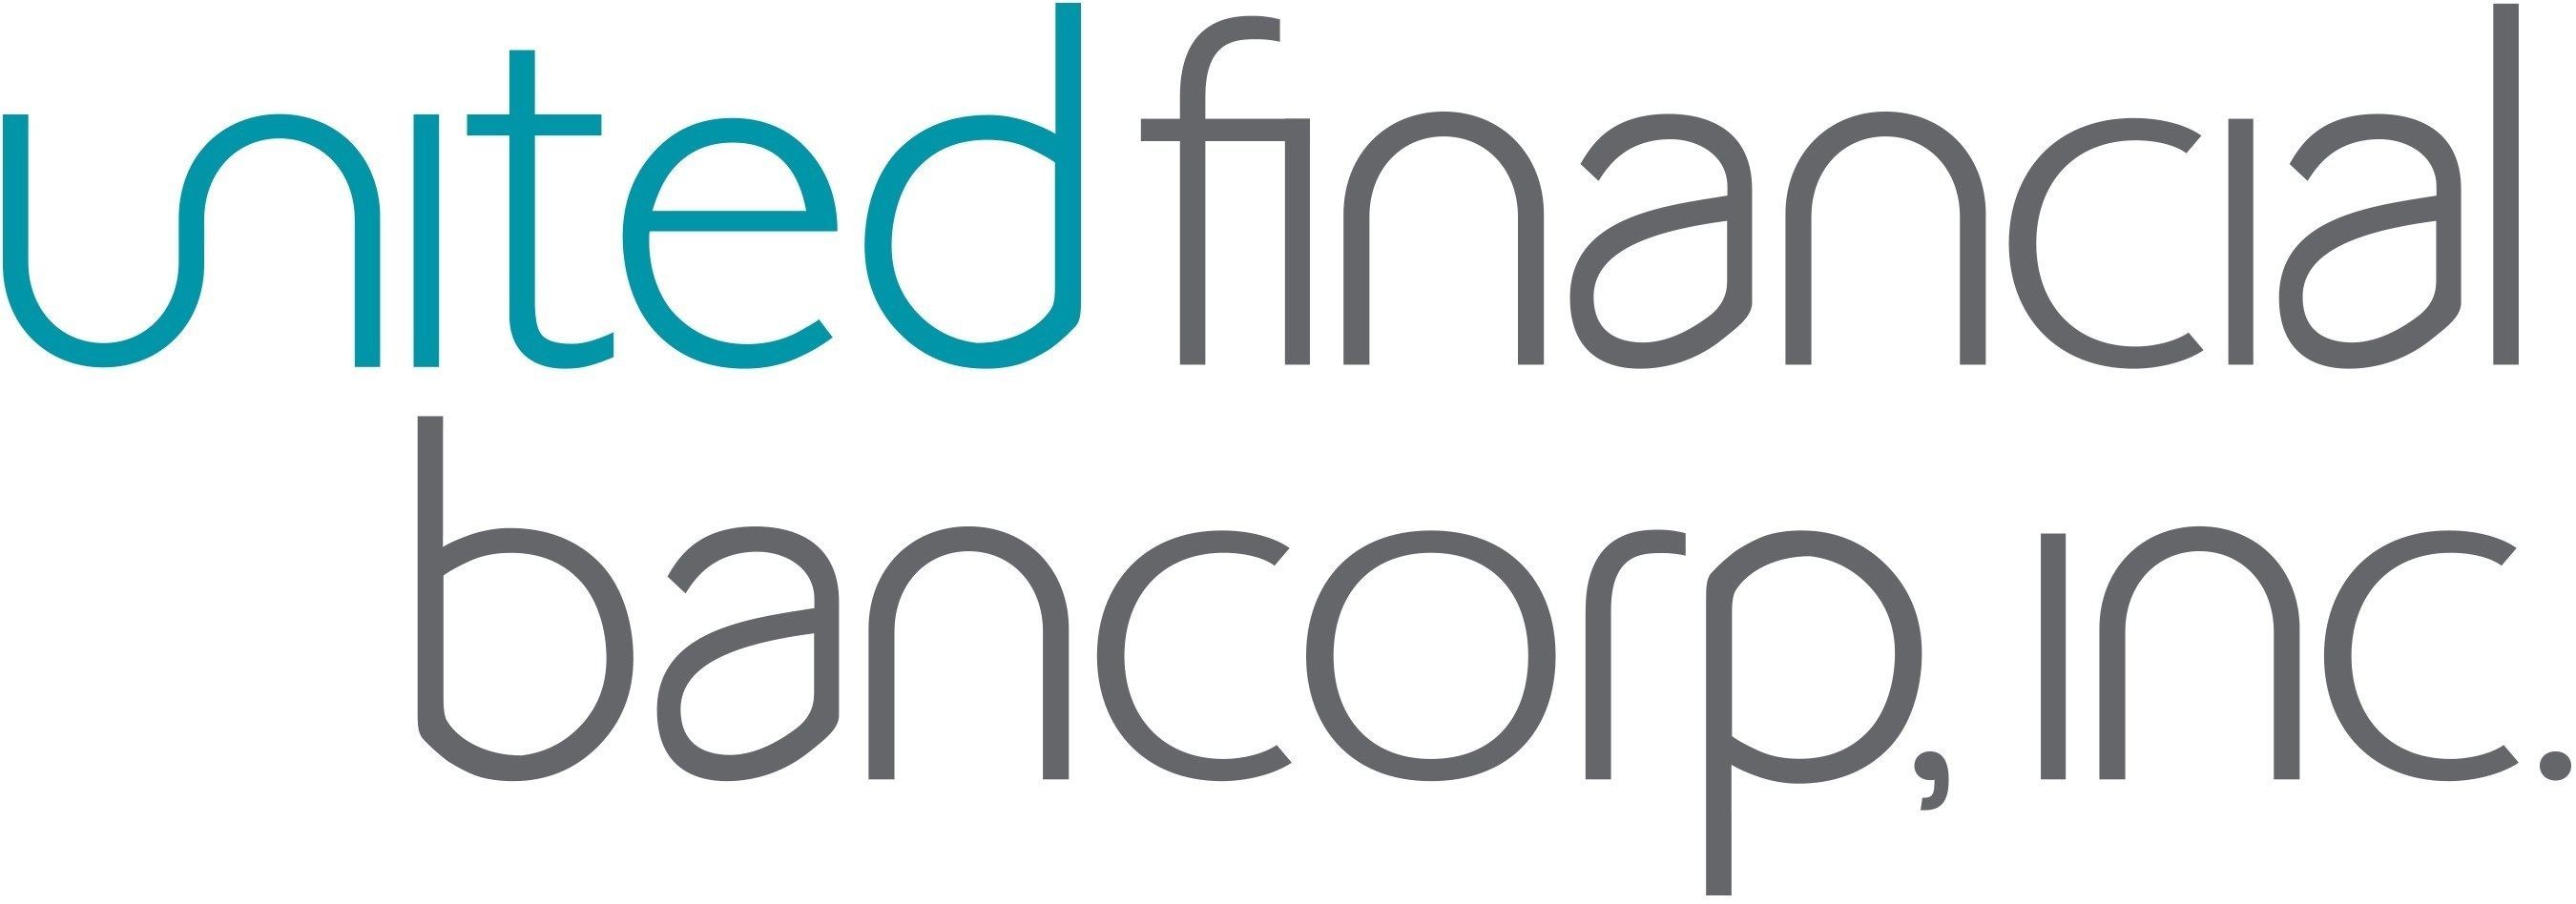 United Financial Bancorp logo